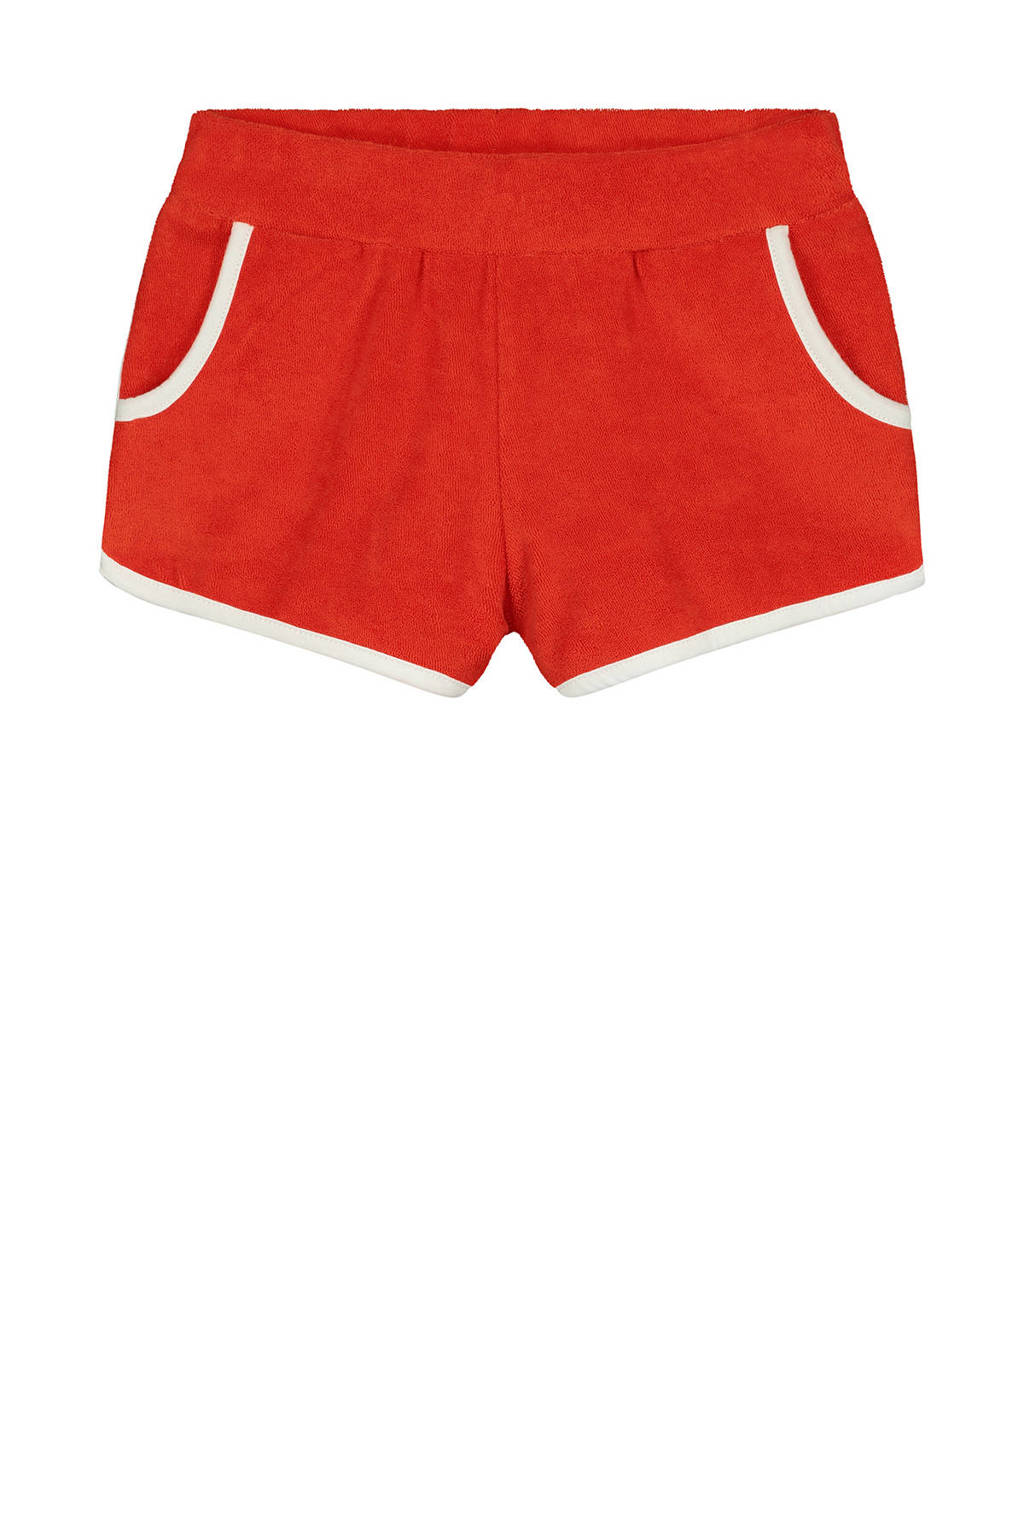 Shiwi strandshort Terry rood/wit, Rood/wit